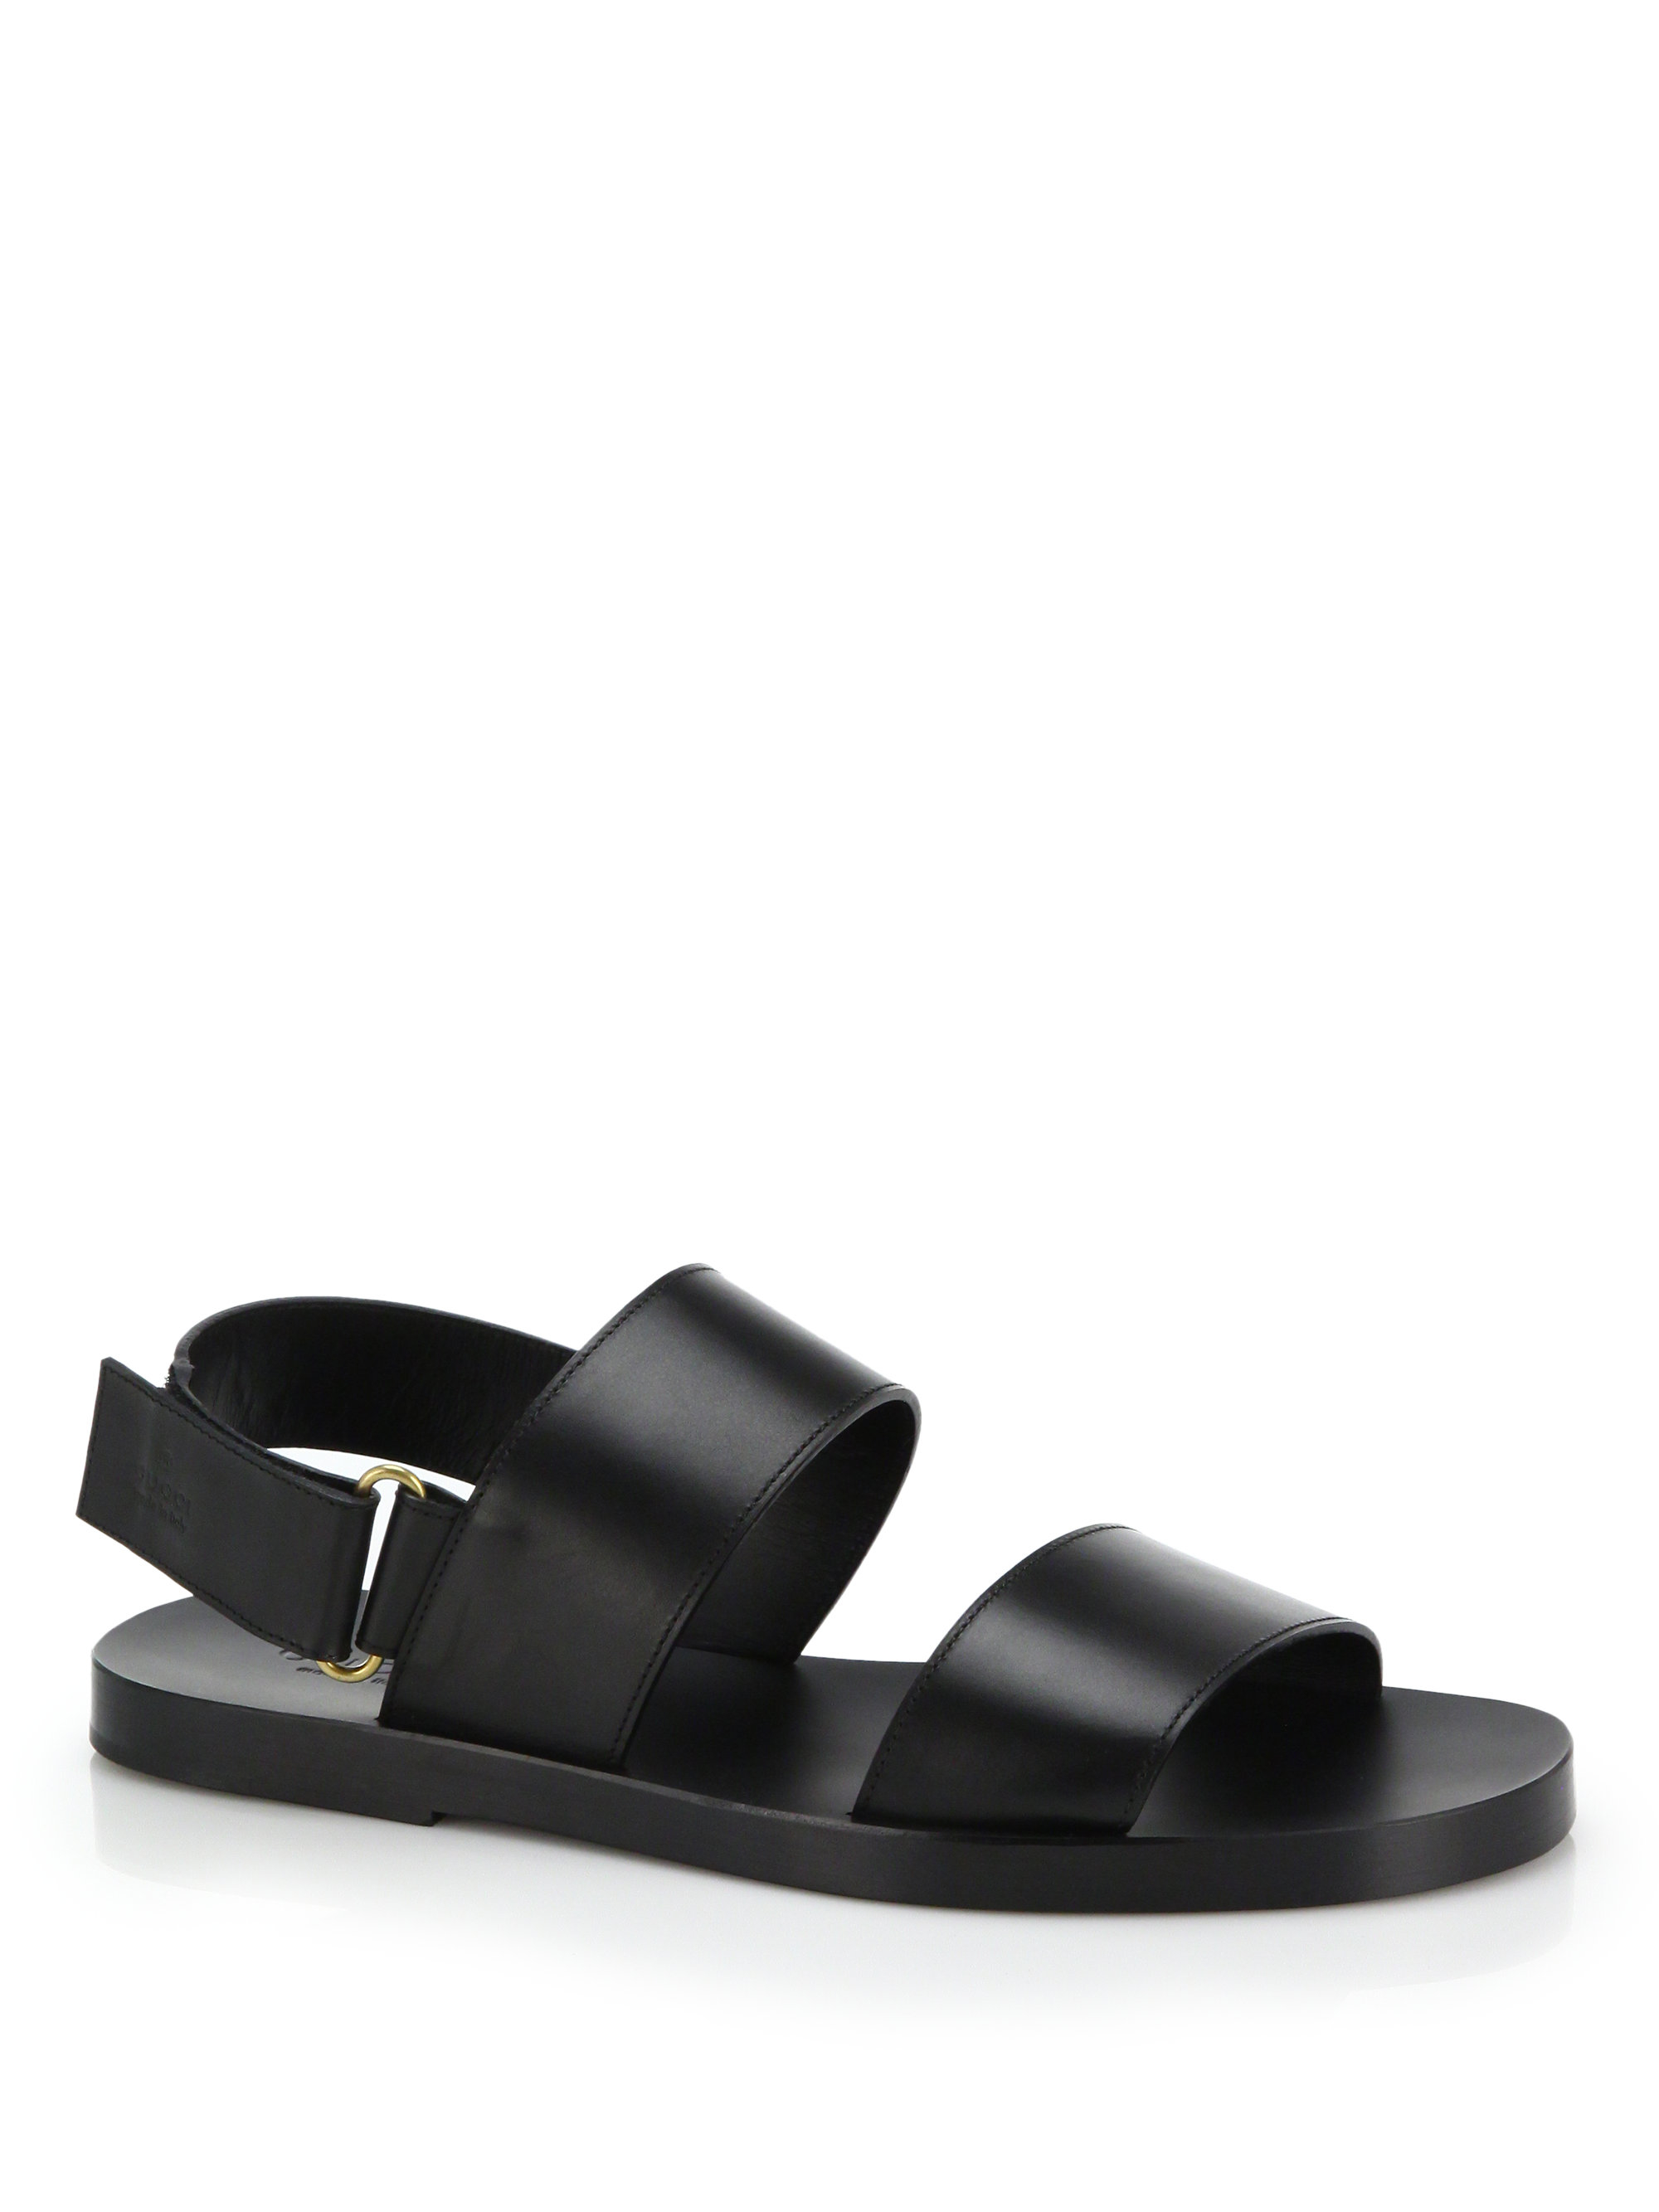 Gucci Brighton Leather Sandals In Black For Men Lyst